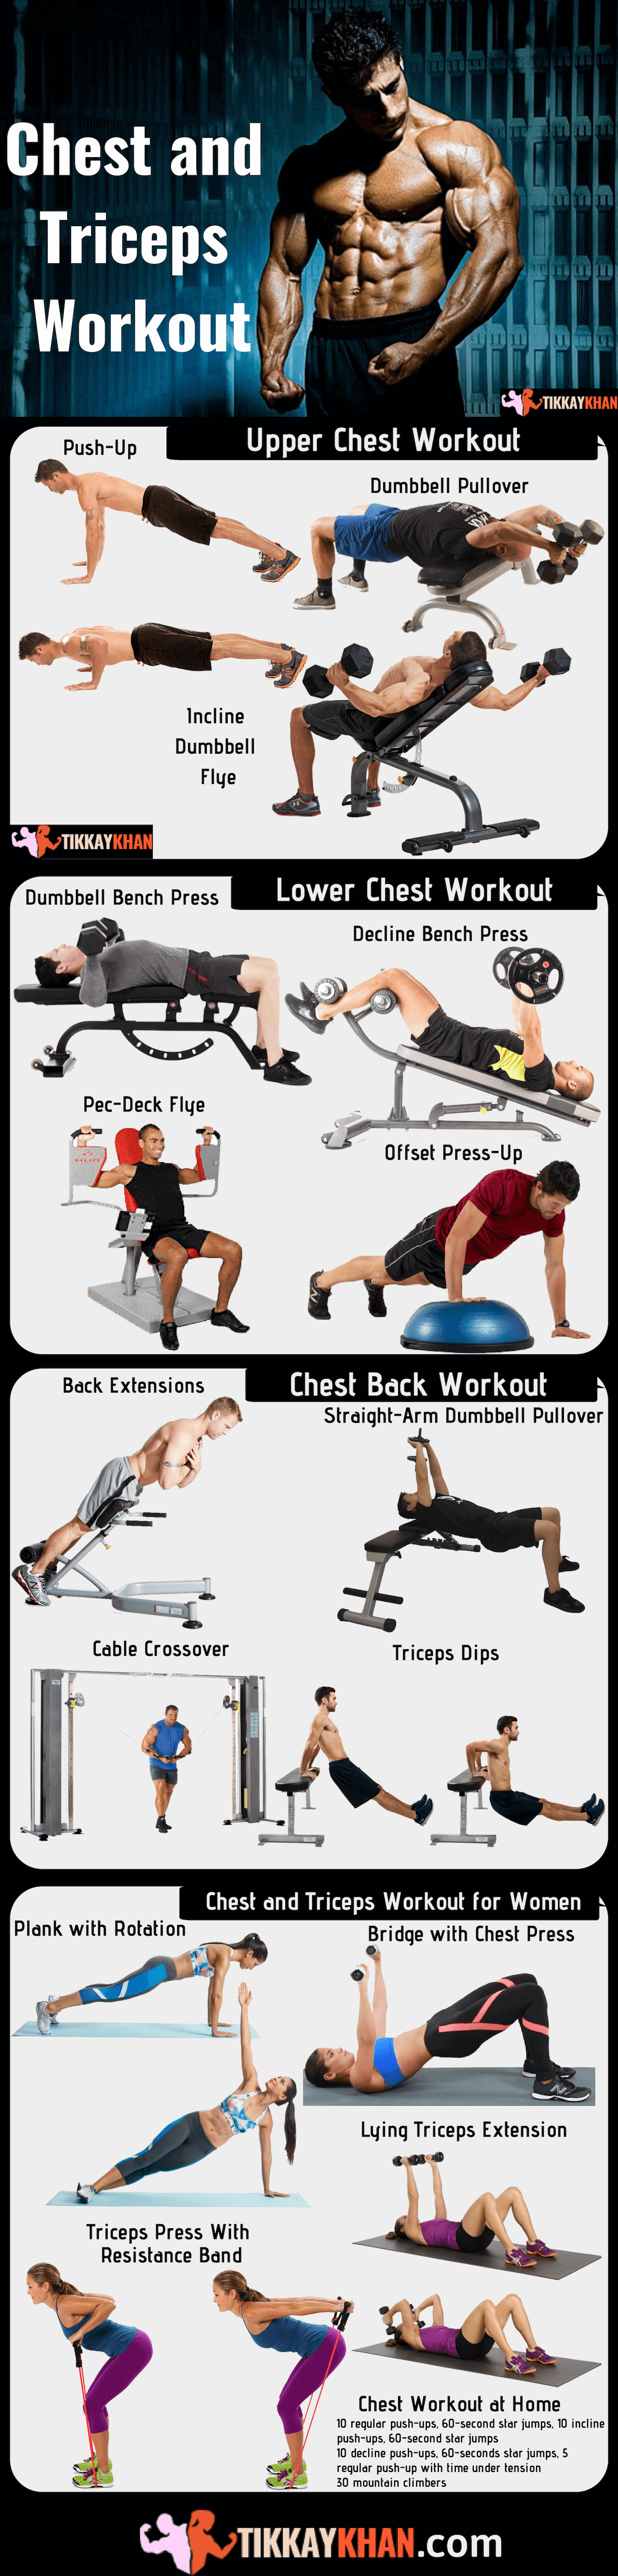 Chest and Triceps Workout Infographic